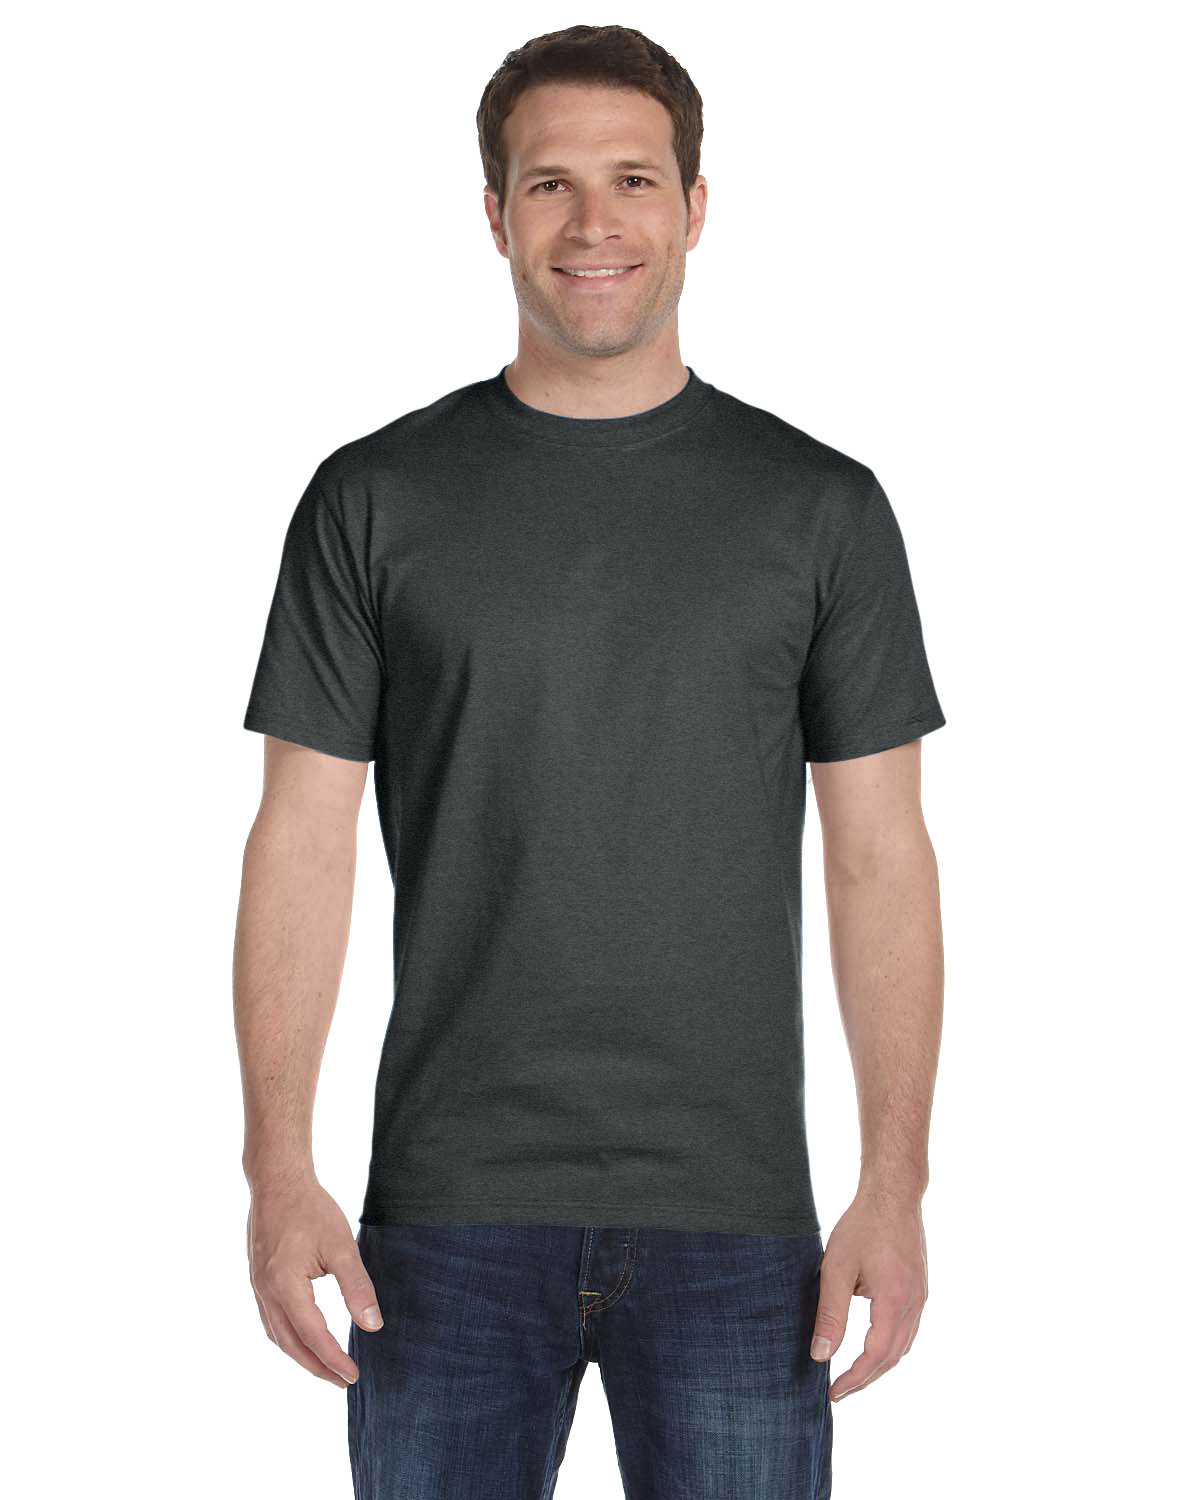 Hanes Unisex Comfortsoft® Cotton T-Shirt CHARCOAL HEATHER